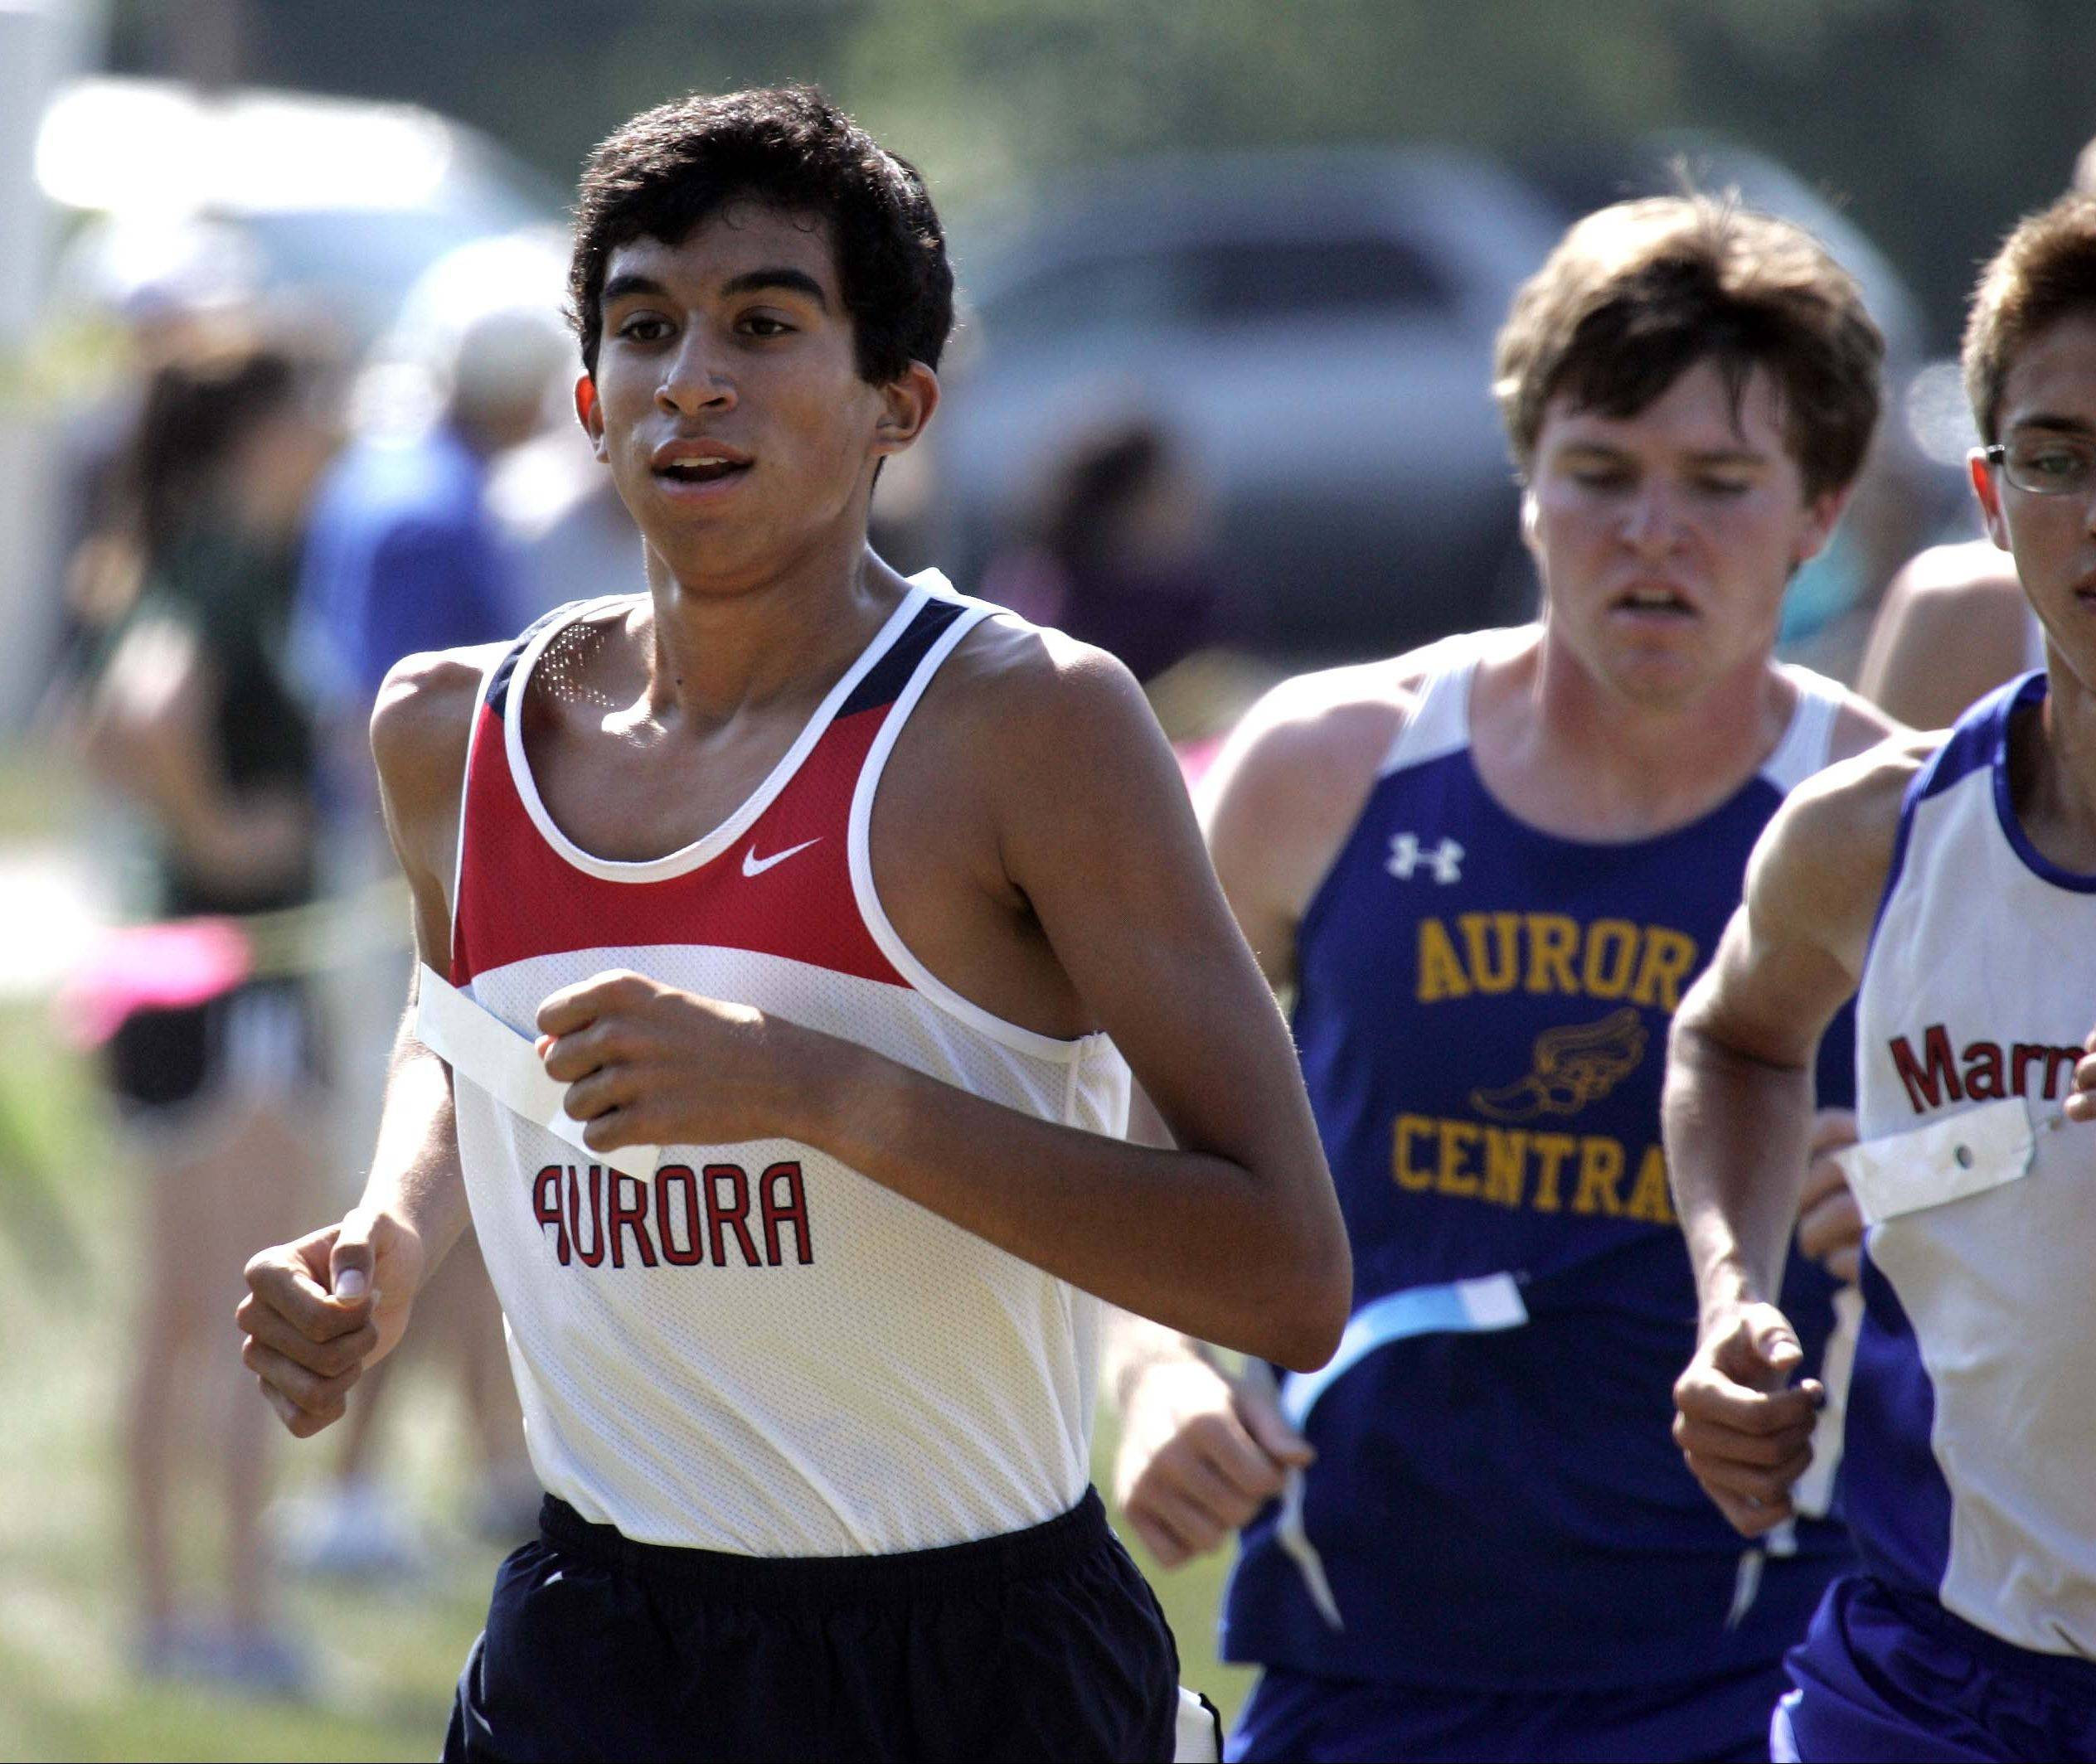 West Aurora's Omar Gomez works toward first place during the Aurora boys cross county city meet at Marmion Saturday. Gomez won his second straight title while Marmion's John Graft and Aurora Central's Matt Meyers (behind Gomez) finished second and third, respectively.